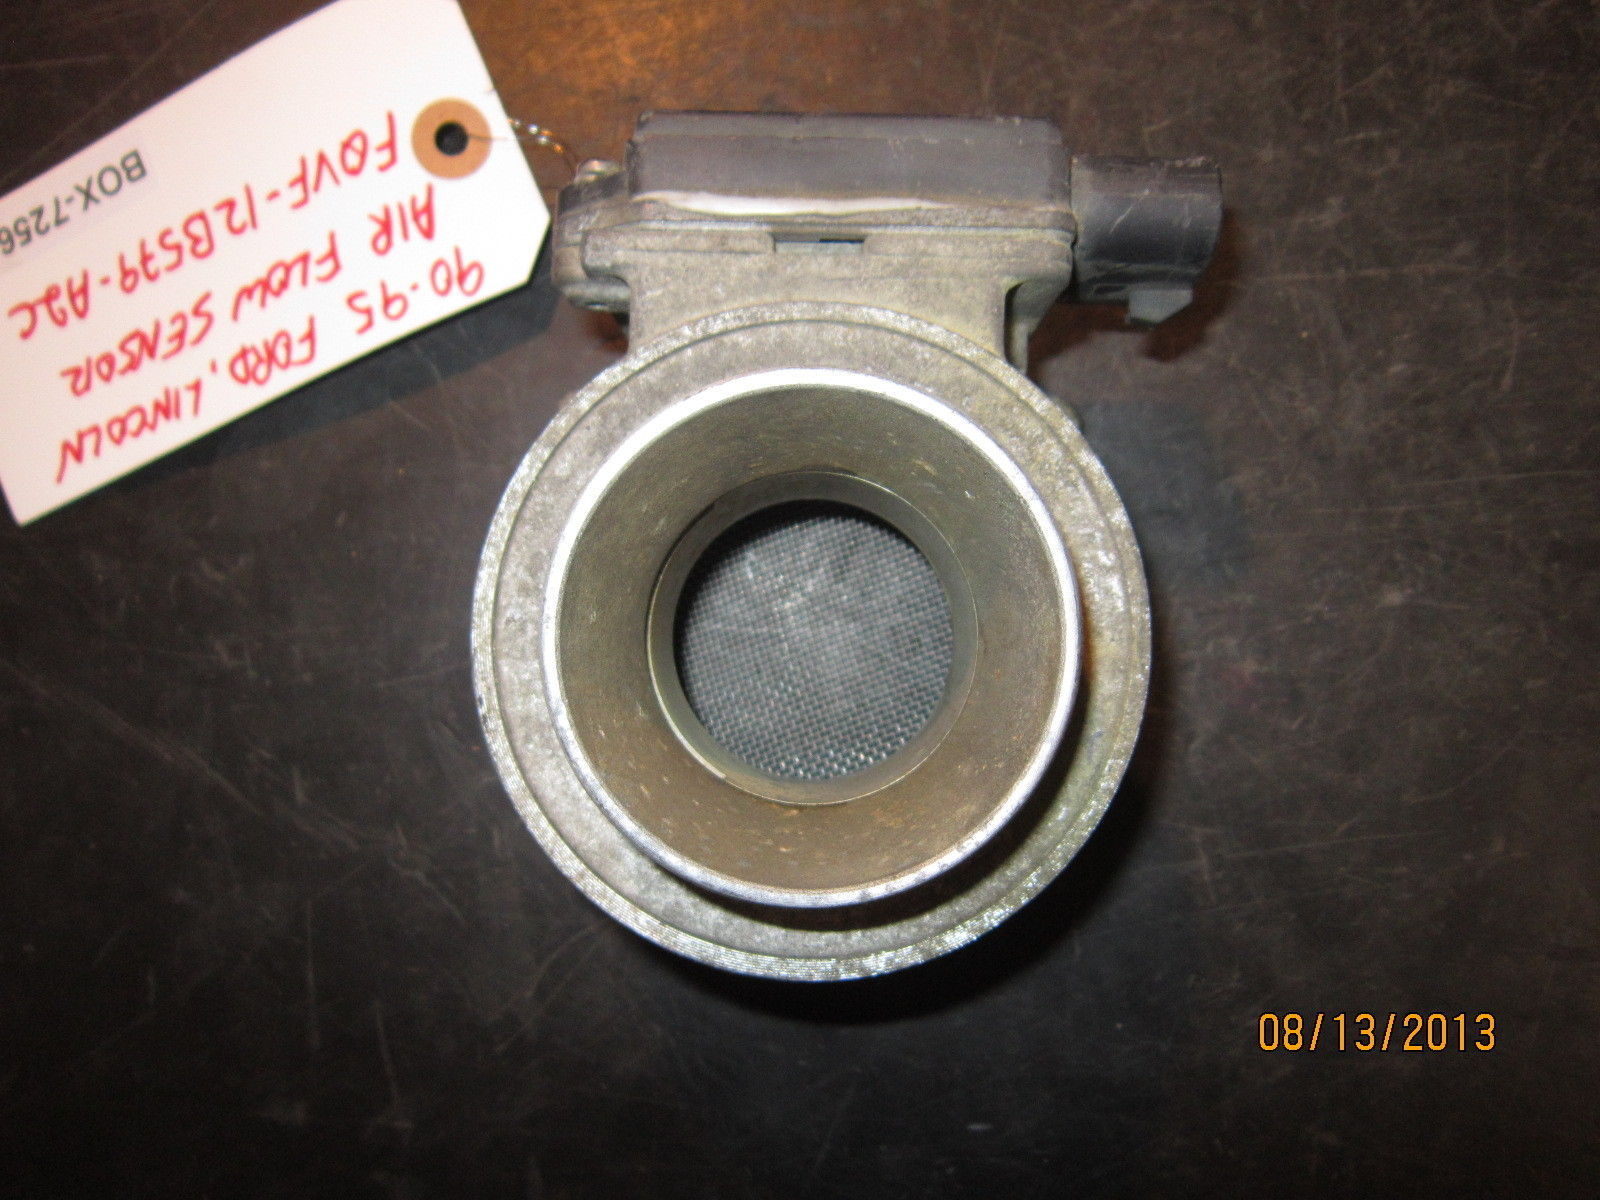 90 91 92 93 94 95 FORD,LINCOLN AIR FLOW SENSOR #F0VF-12B579-A2C *See item*